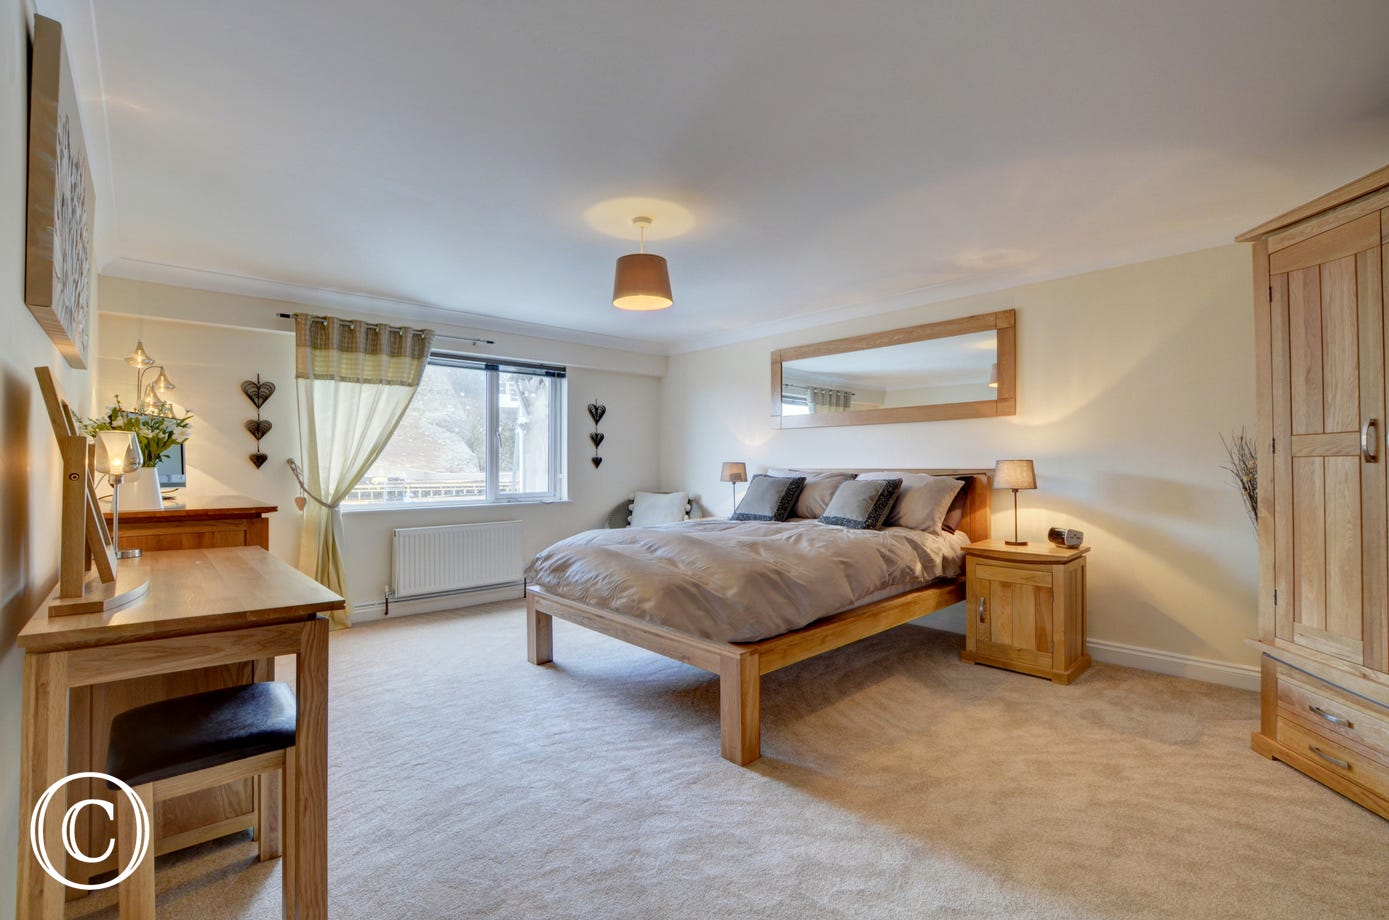 The super stylish master bedroom which benefits from a contemporary ensuite bathroom